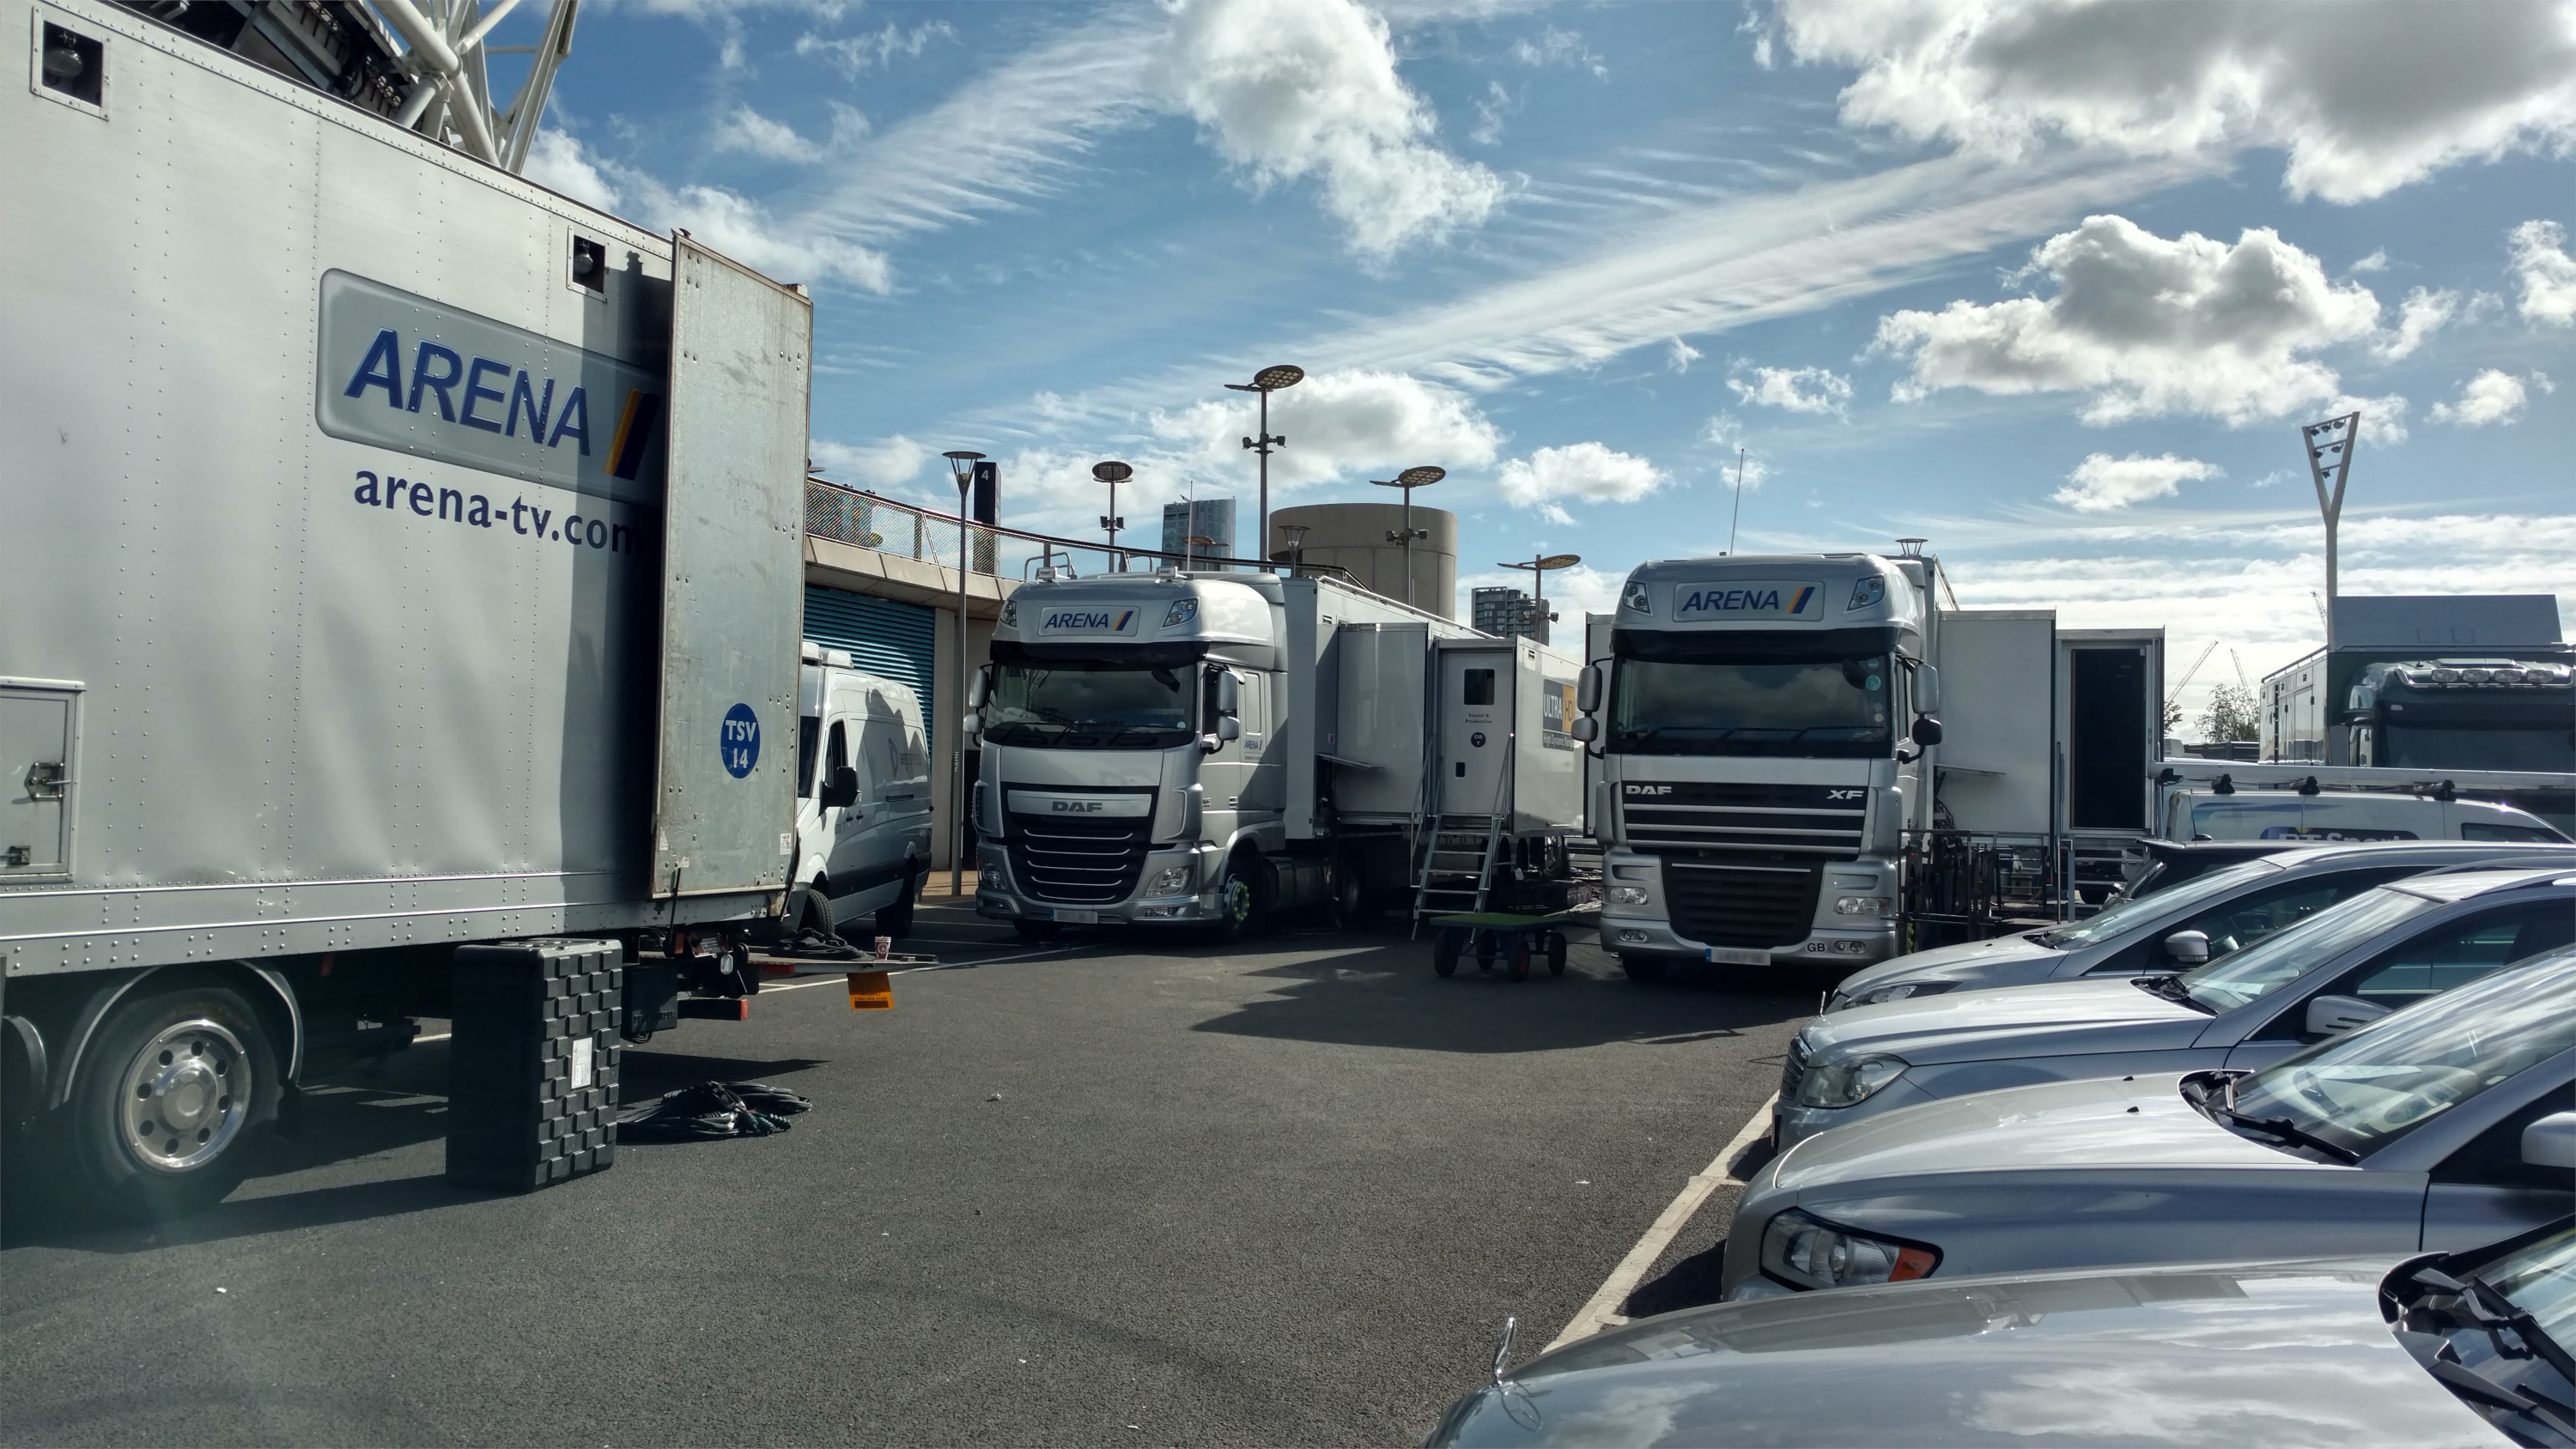 Selection of parked outside broadcast lorries